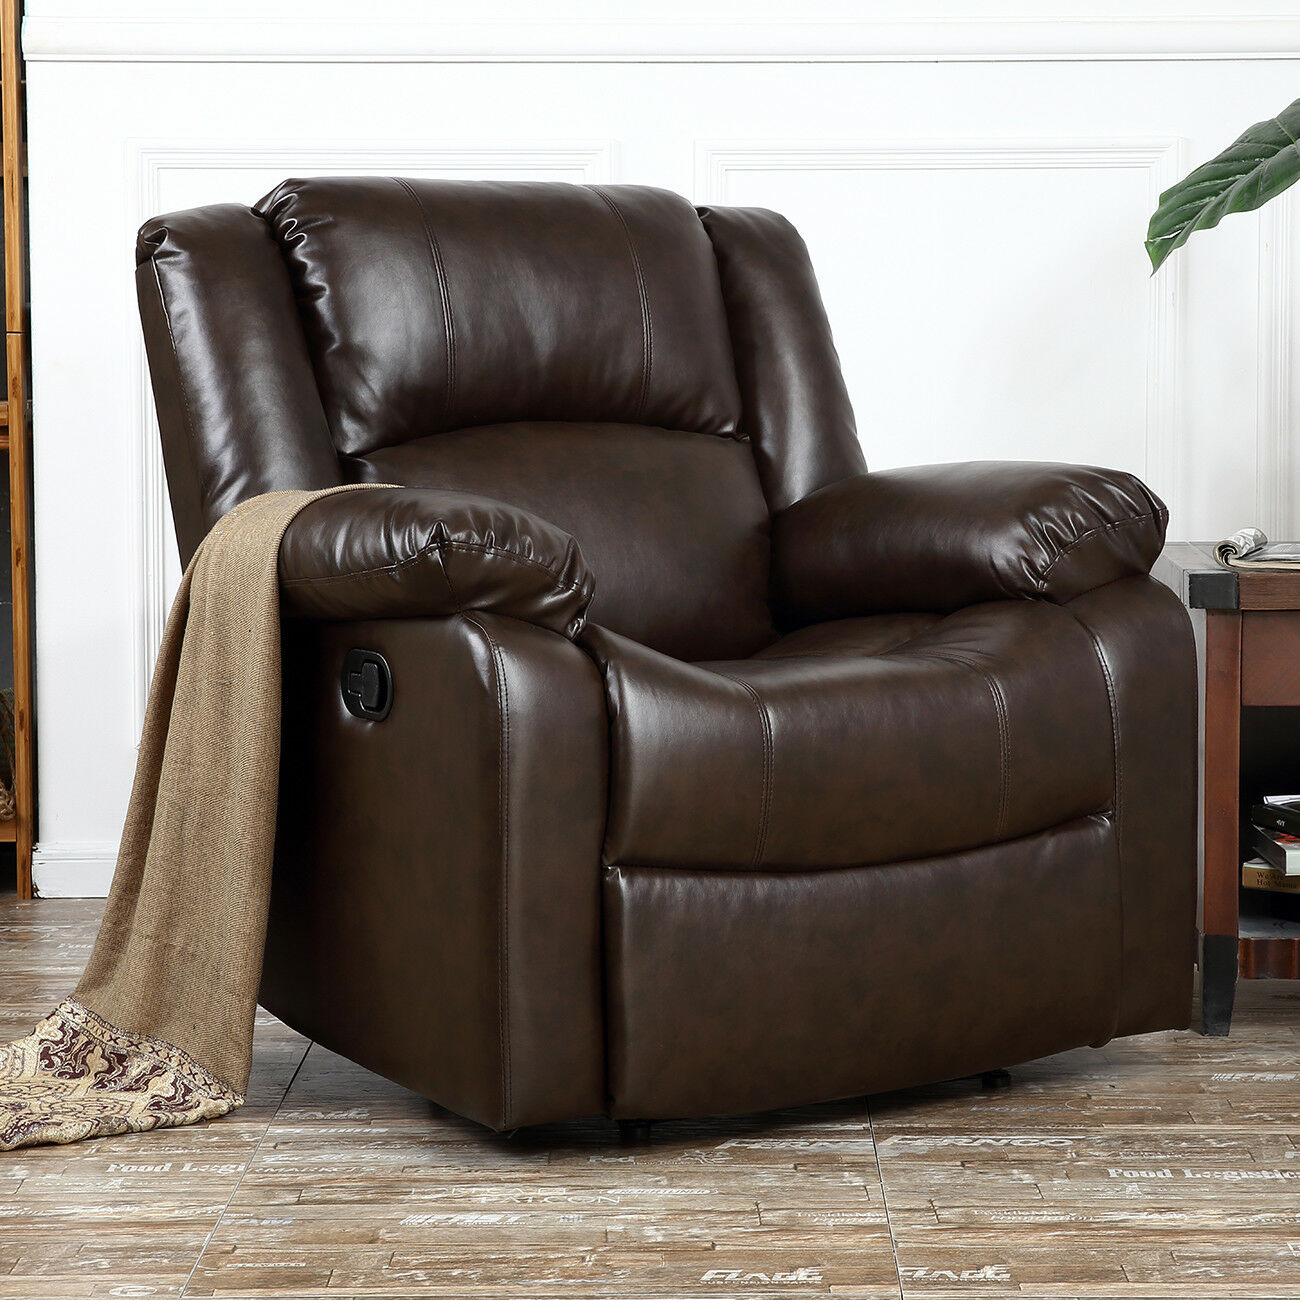 Picture of: Oversized Leather Recliner Large Extra Wide Rocker Chair Brown Overstuffed For Sale Online Ebay